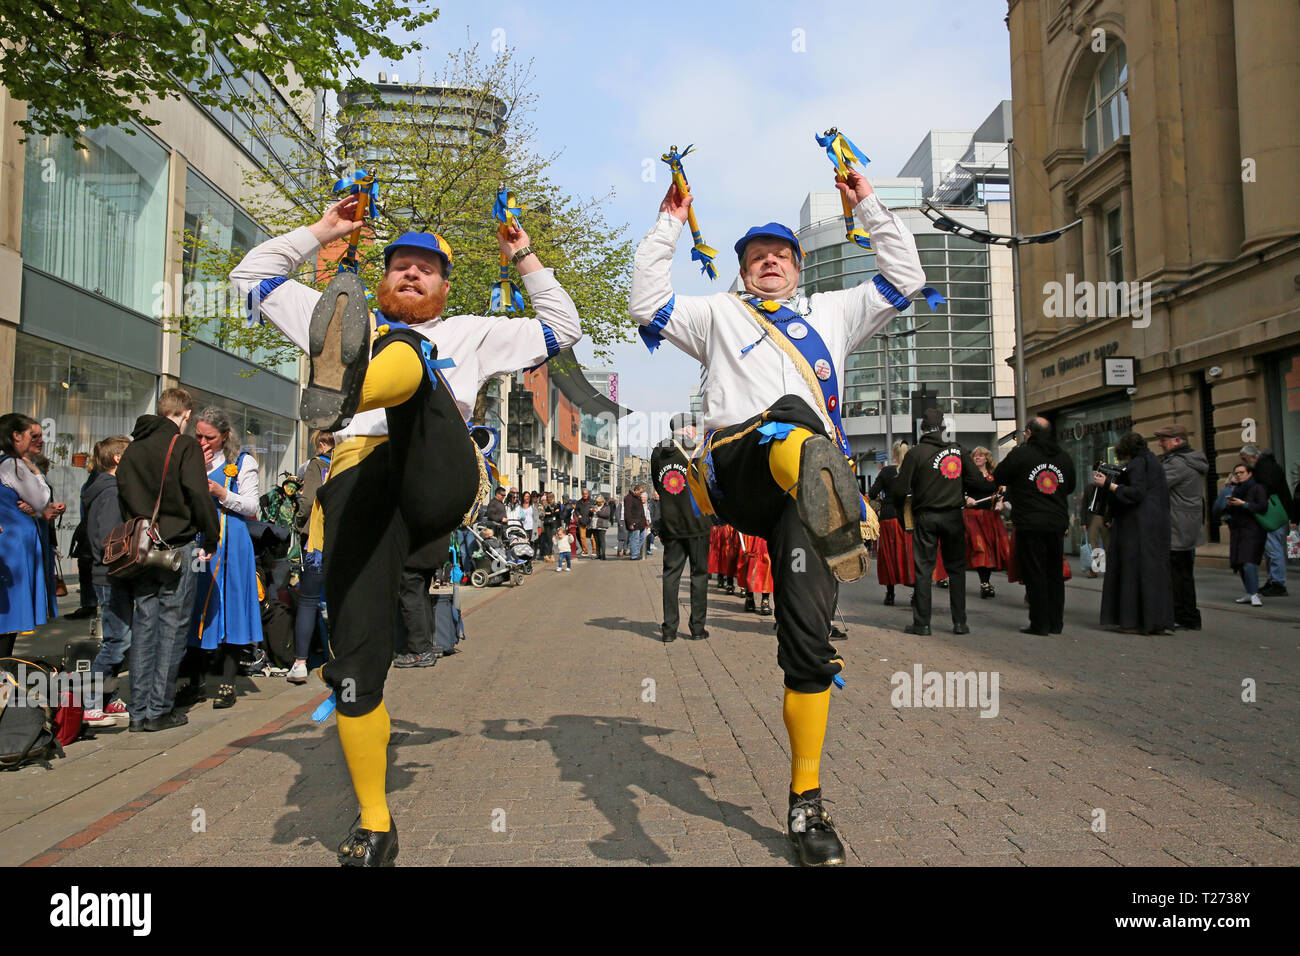 Manchester, UK. 30th March 2019. The Joint Morris Organisations national day of dance takes place with Morris dancers taking part from all over the country. Manchester, UK, 30th March 2019 (C)Barbara Cook/Alamy Live News - Stock Image